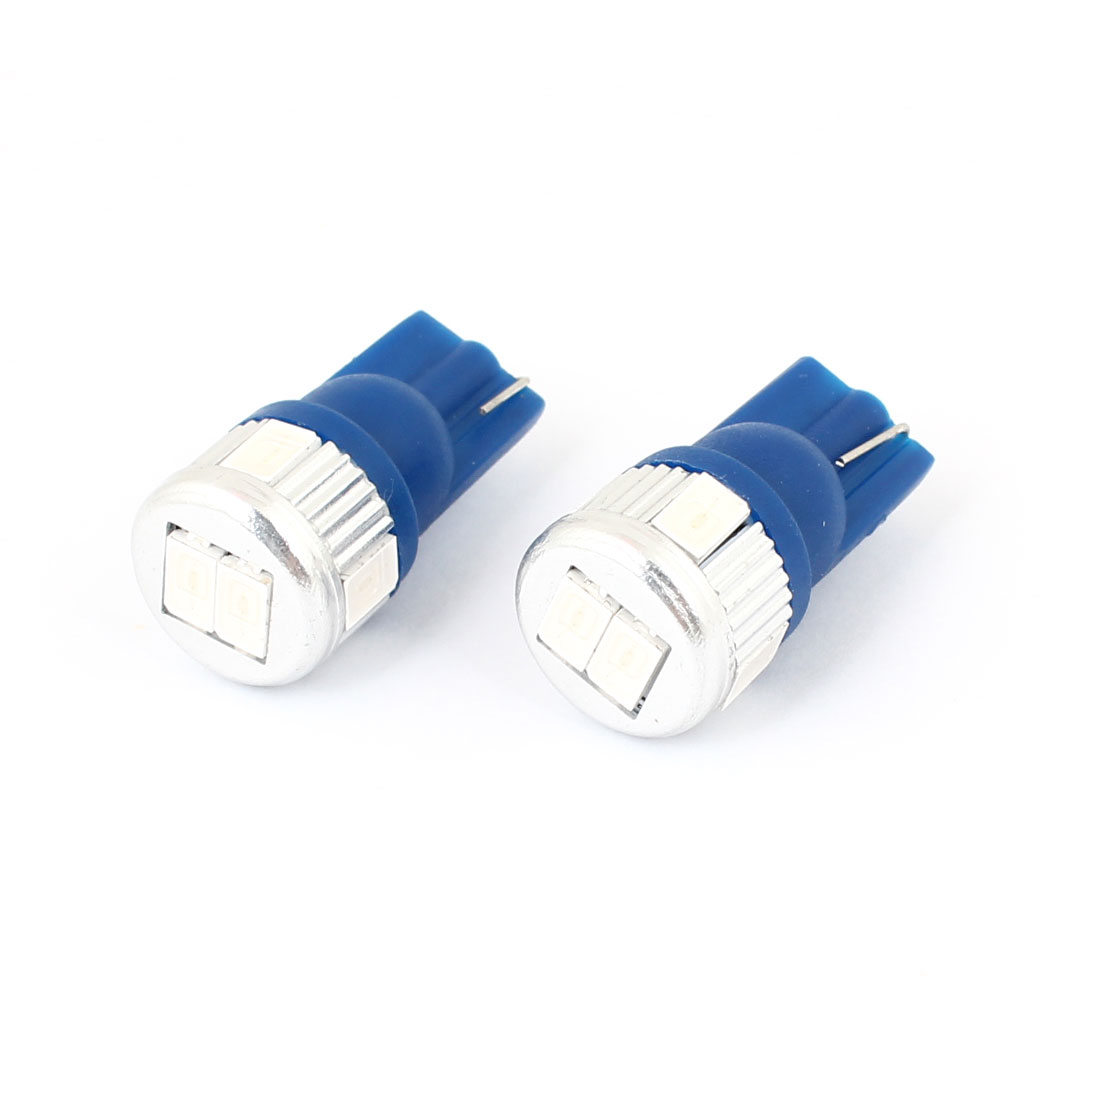 2 Pcs T10 161 Van Truck Car 5630 SMD 6 Blue LED Side Marker Light Bulb